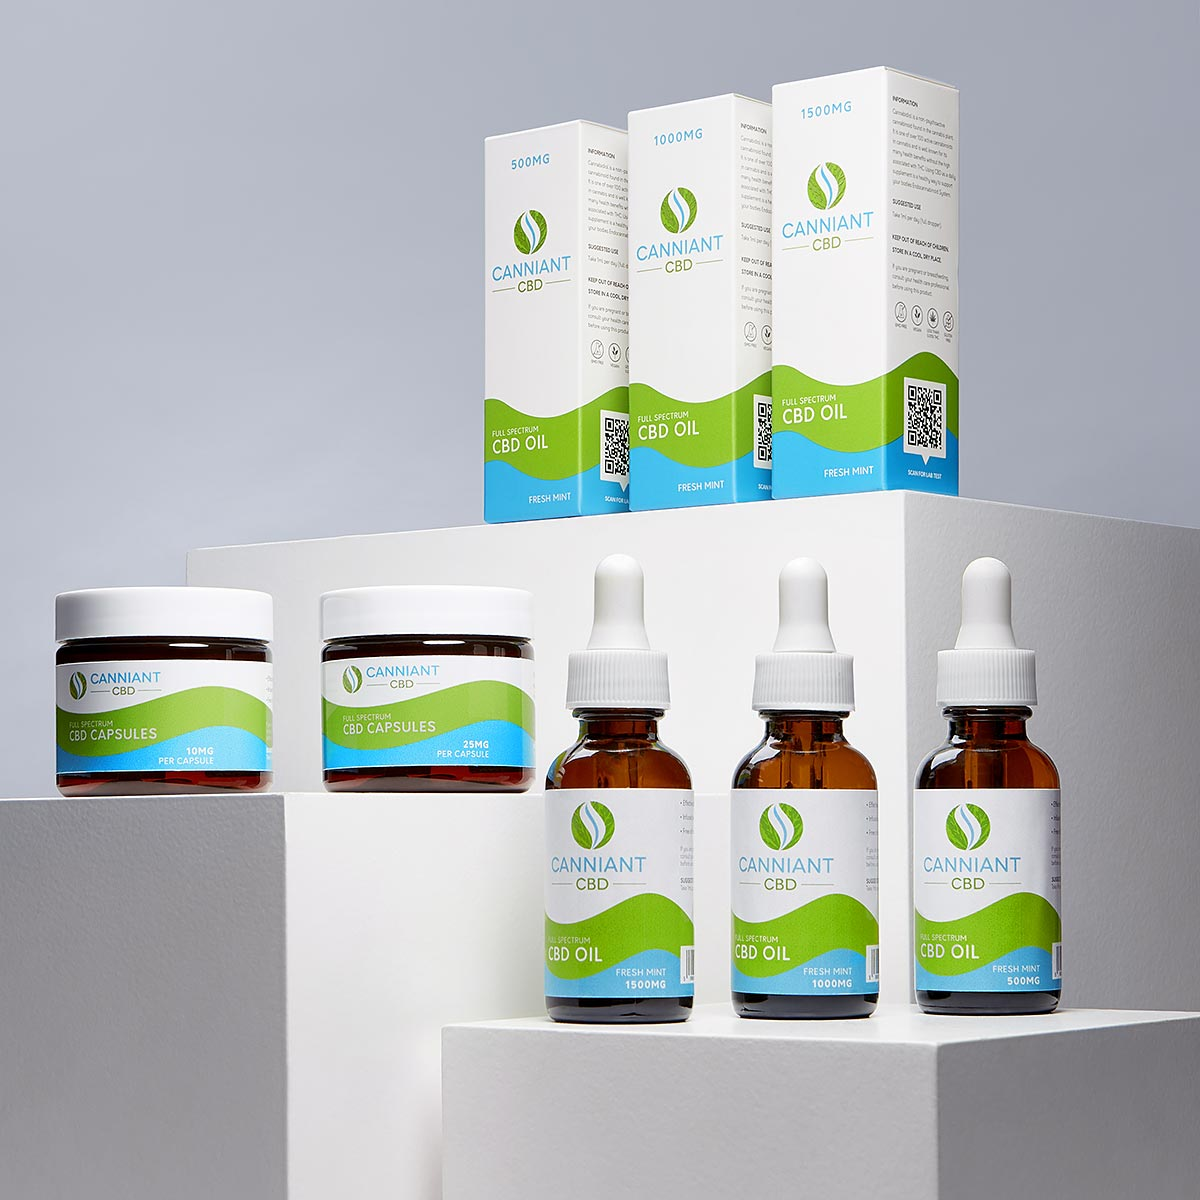 Canniant CBD Oil Packaging Design